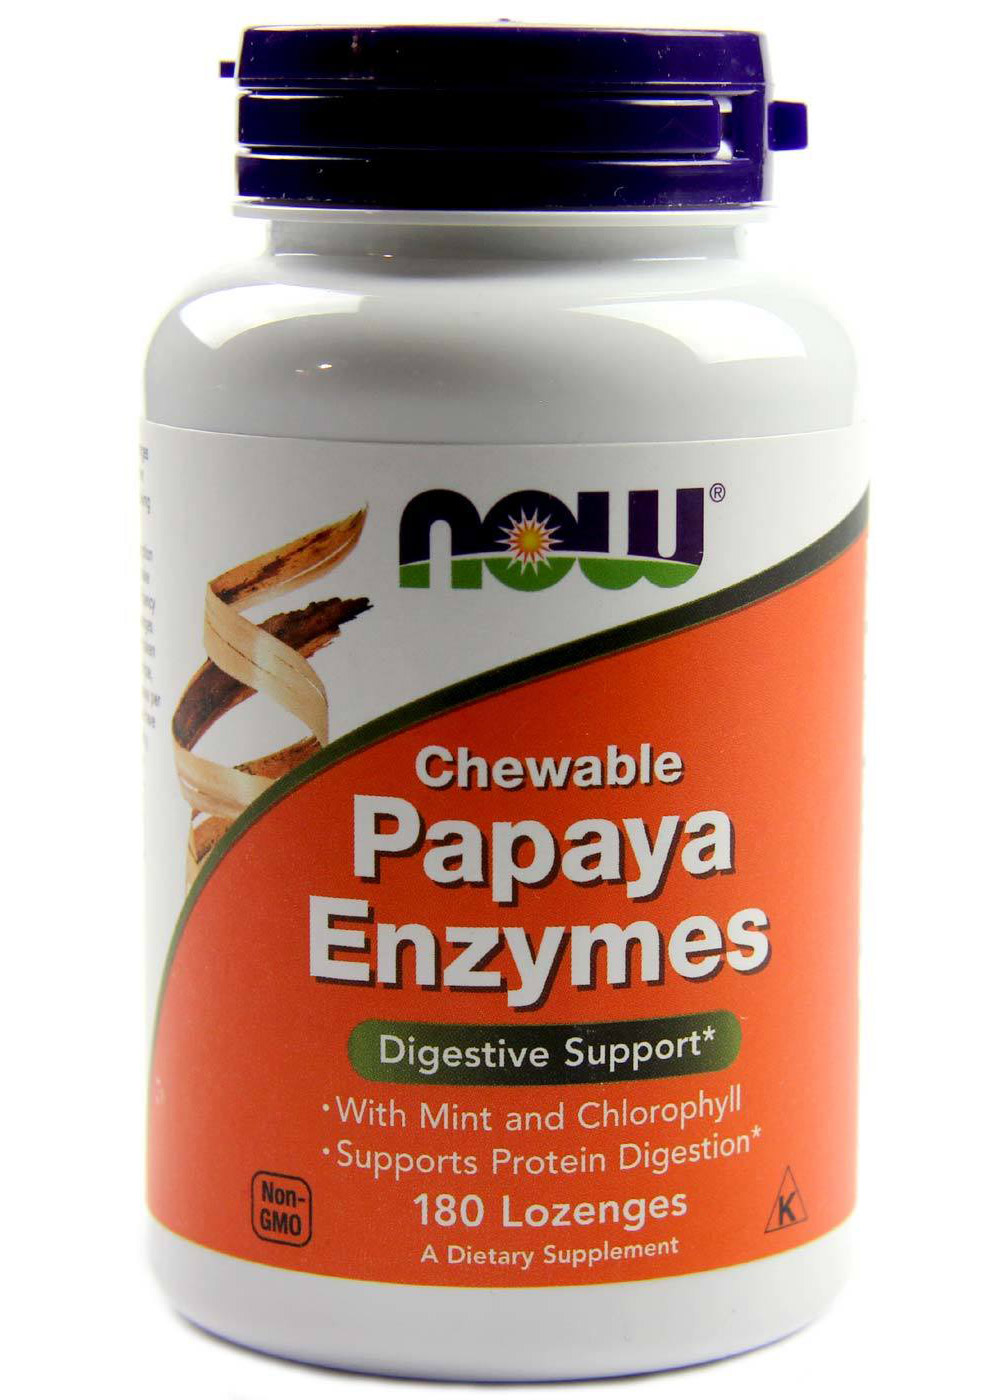 Papaya Enzyme NOW (180 Lozenges)